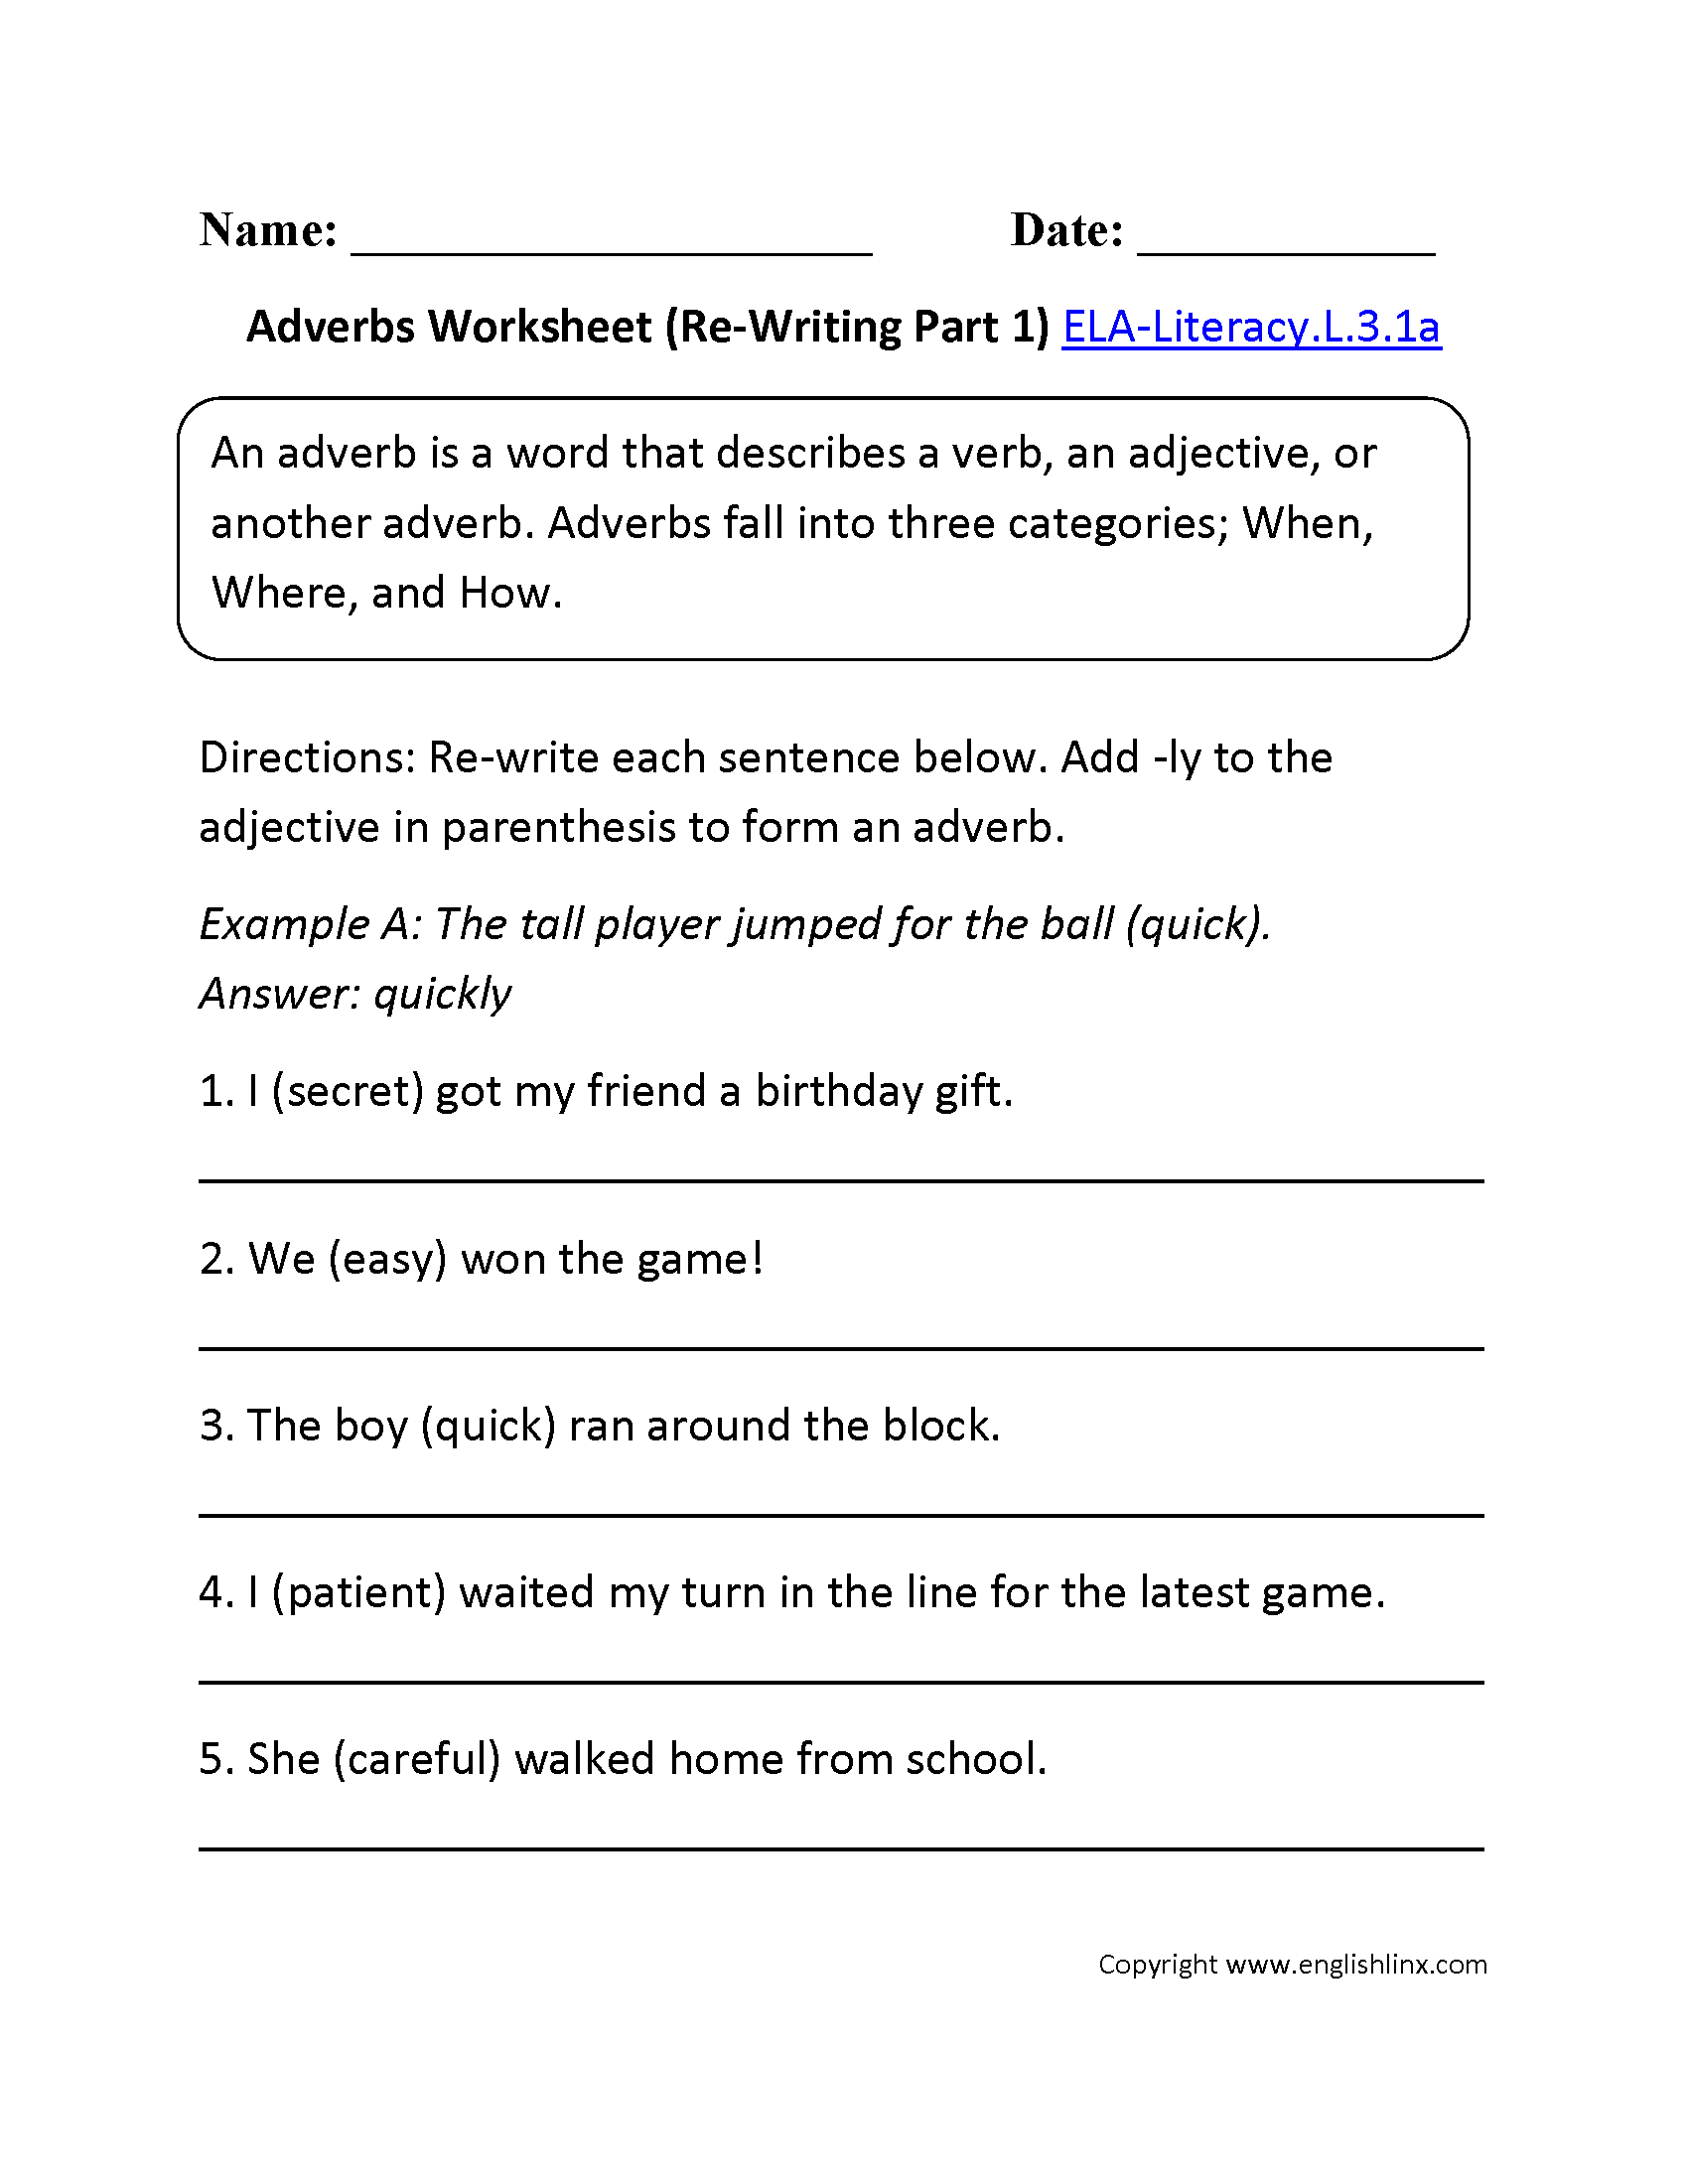 worksheet Comparative Superlative Worksheet comparative and superlative adjectives worksheet 2 l 3 1 ela literacy 1a language worksheet